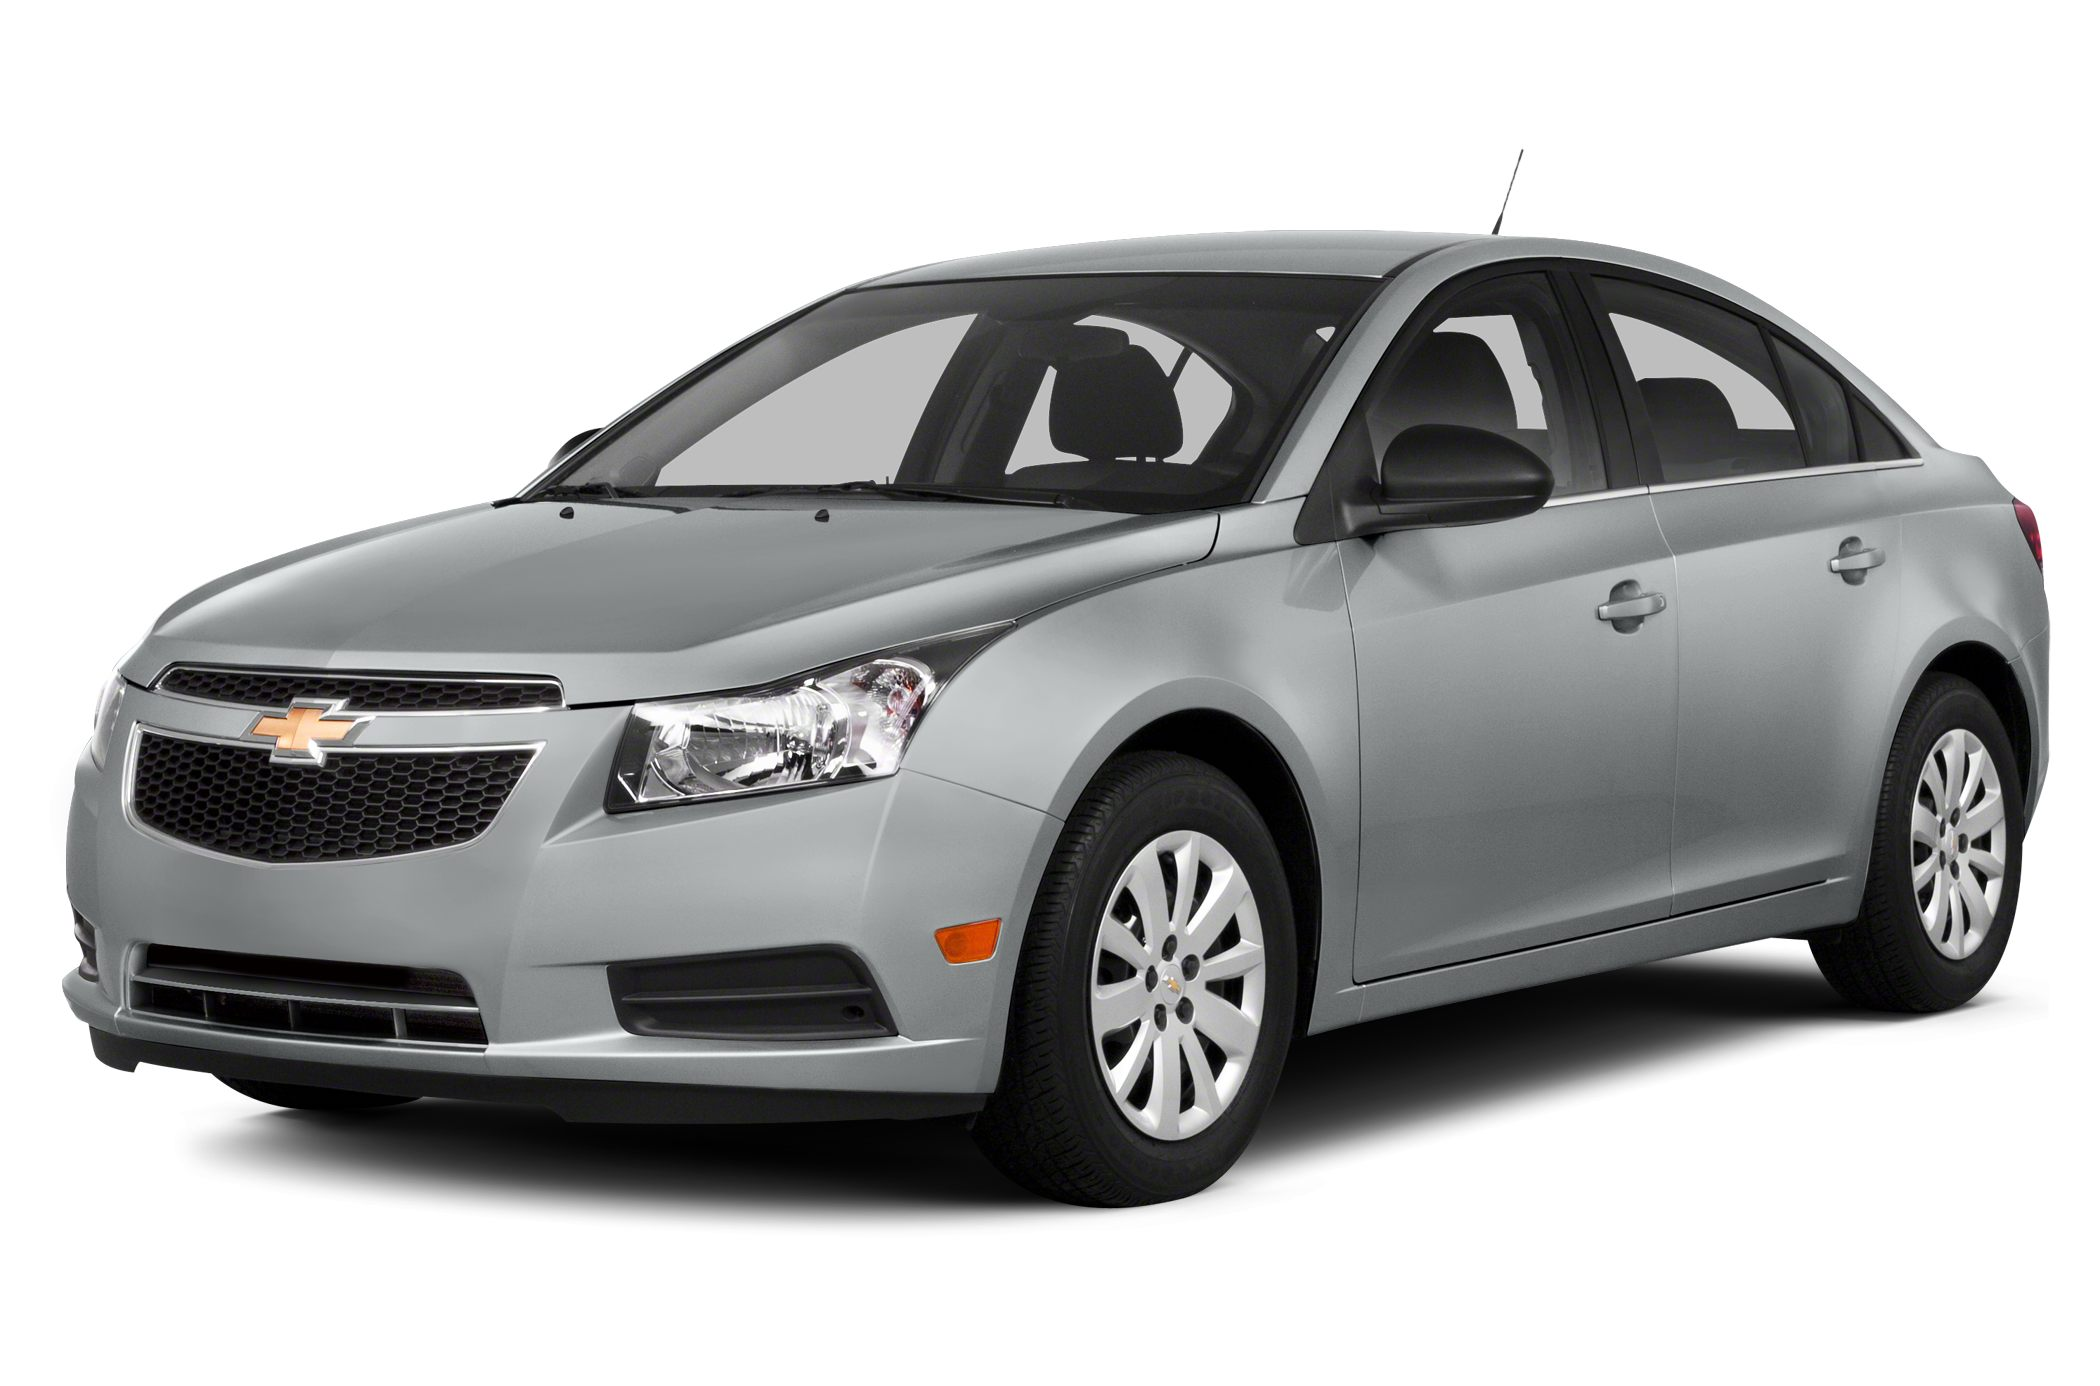 2014 Chevrolet Cruze 1LT Sedan for sale in Kearney for $17,768 with 10,515 miles